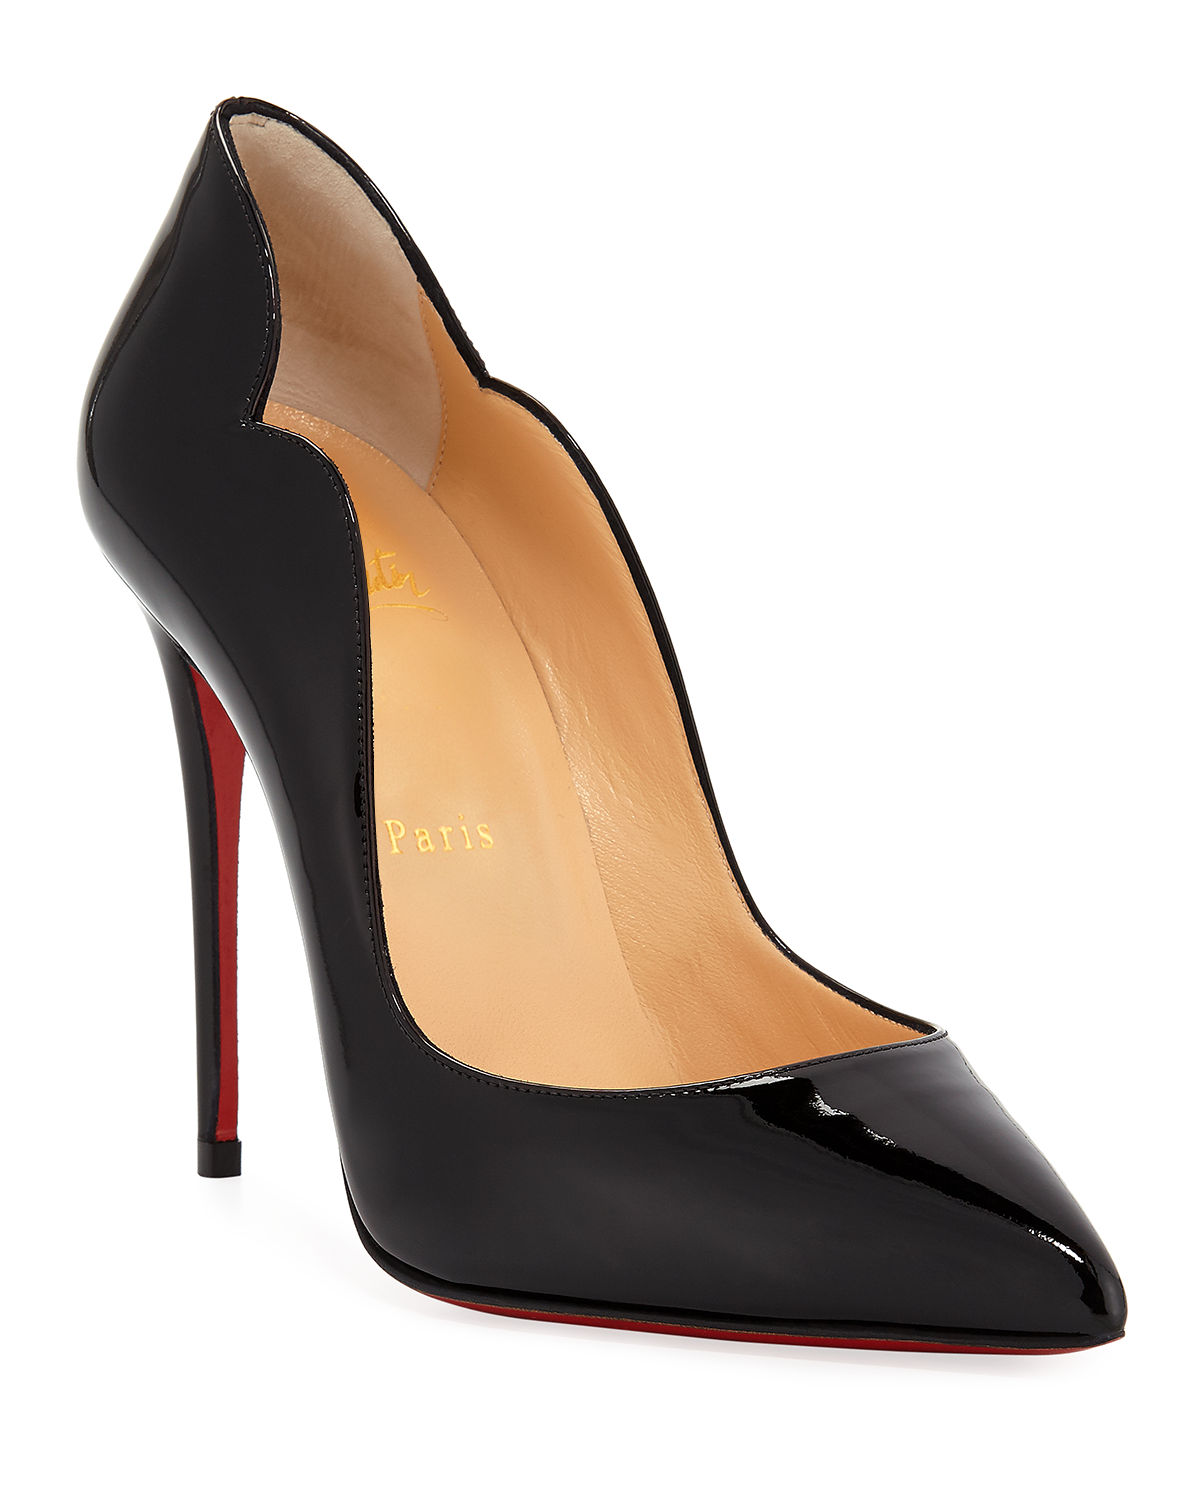 e4776a5a2754 Christian Louboutin Hot Chick 100 Patent Red Sole Pumps